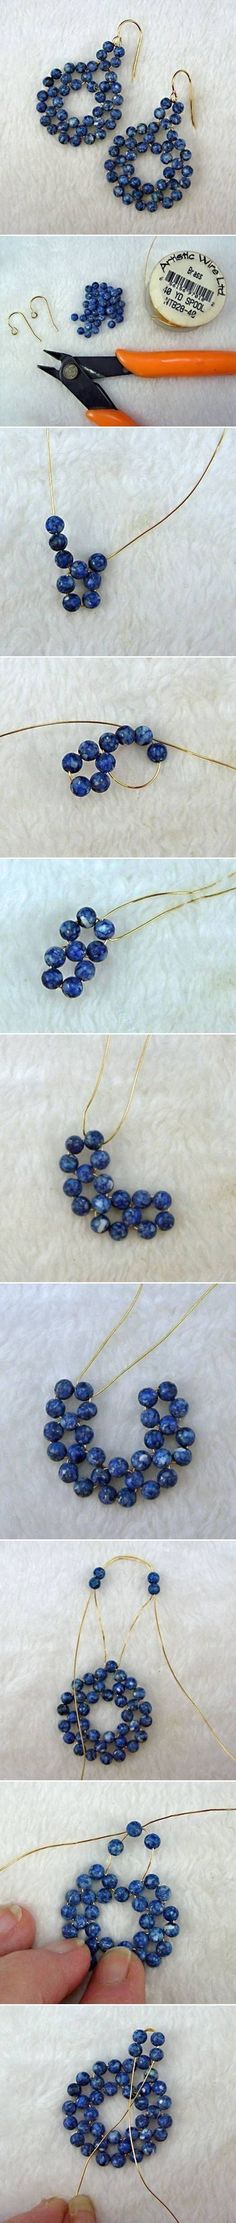 DIY Beads on Wire Earrings DIY Beads on Wire Earrings